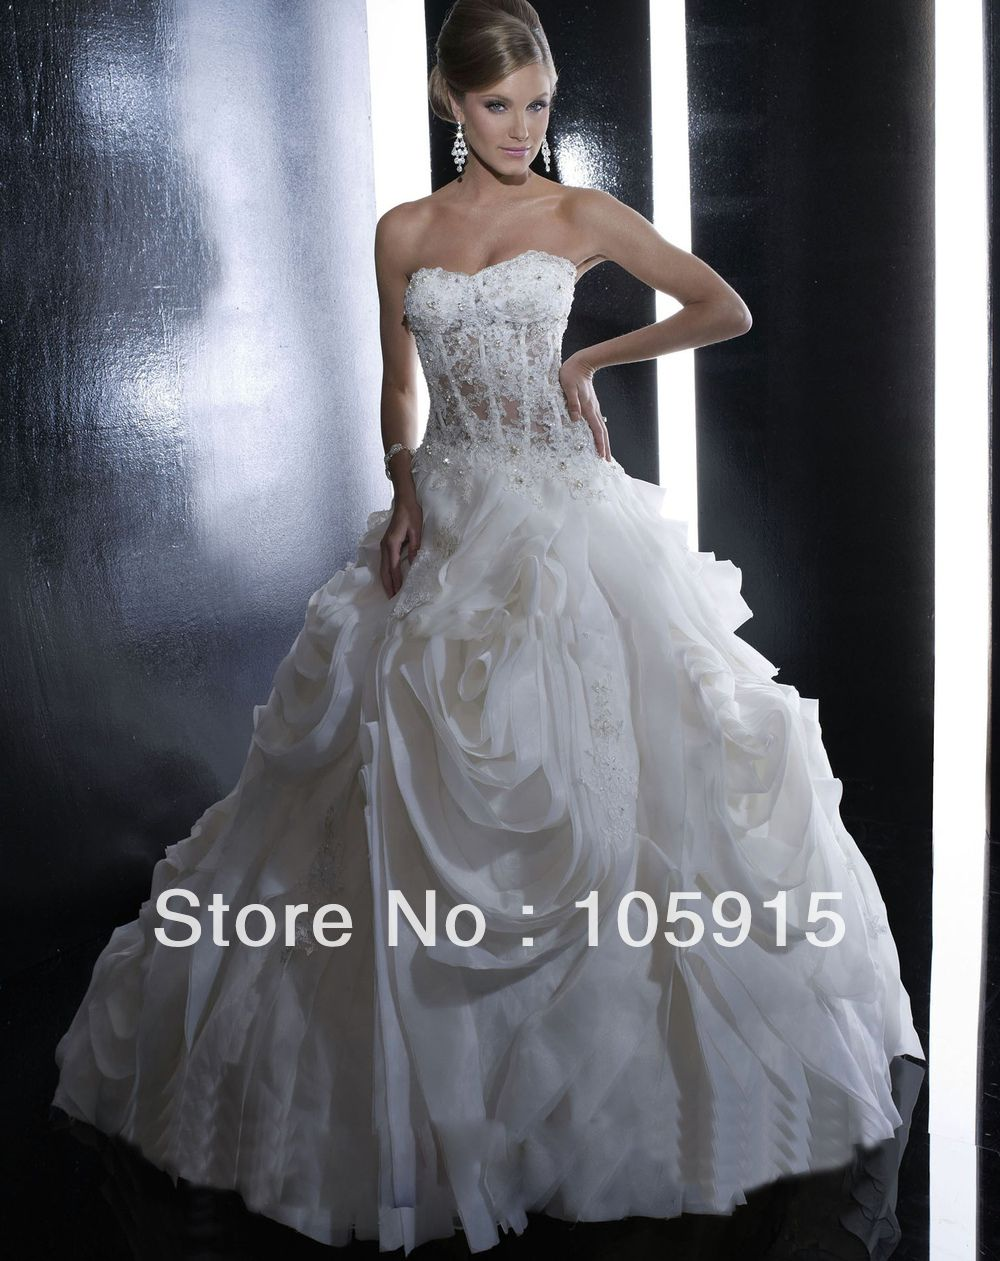 Mini white wedding dress  Find More Wedding Dresses Information about Sexy See Through White